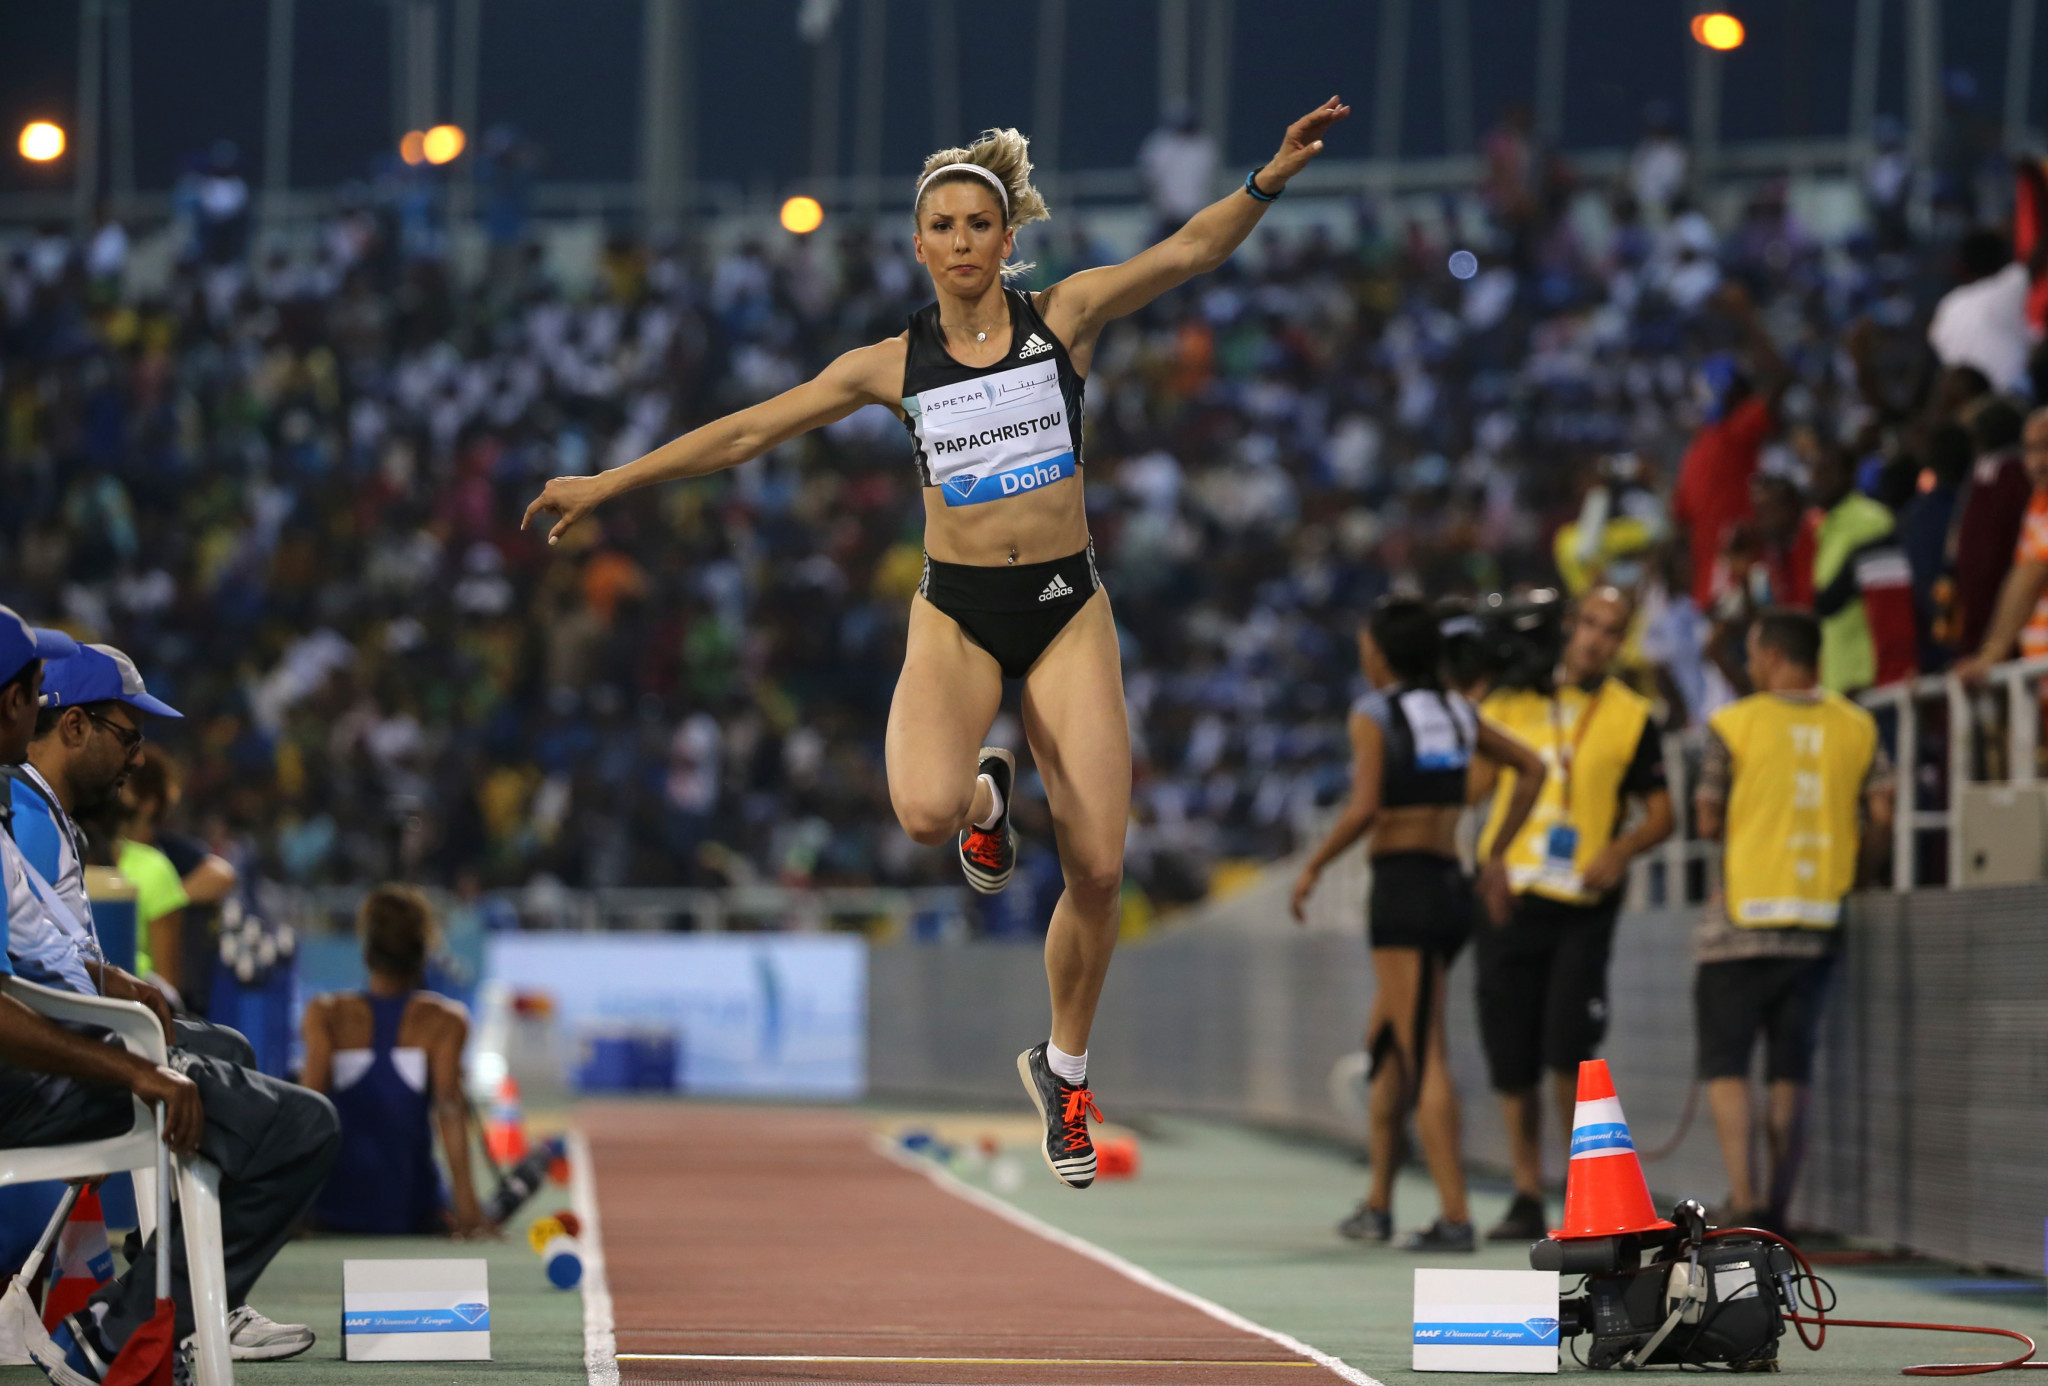 Like her team mate Katerina Stefanidi, Greek triple jumper Paraskevi Papachristou will now not need to repay the bonus she earned for winning bronze at the 2016 World Indoor Championships in Portland, Oregon ©Getty Images